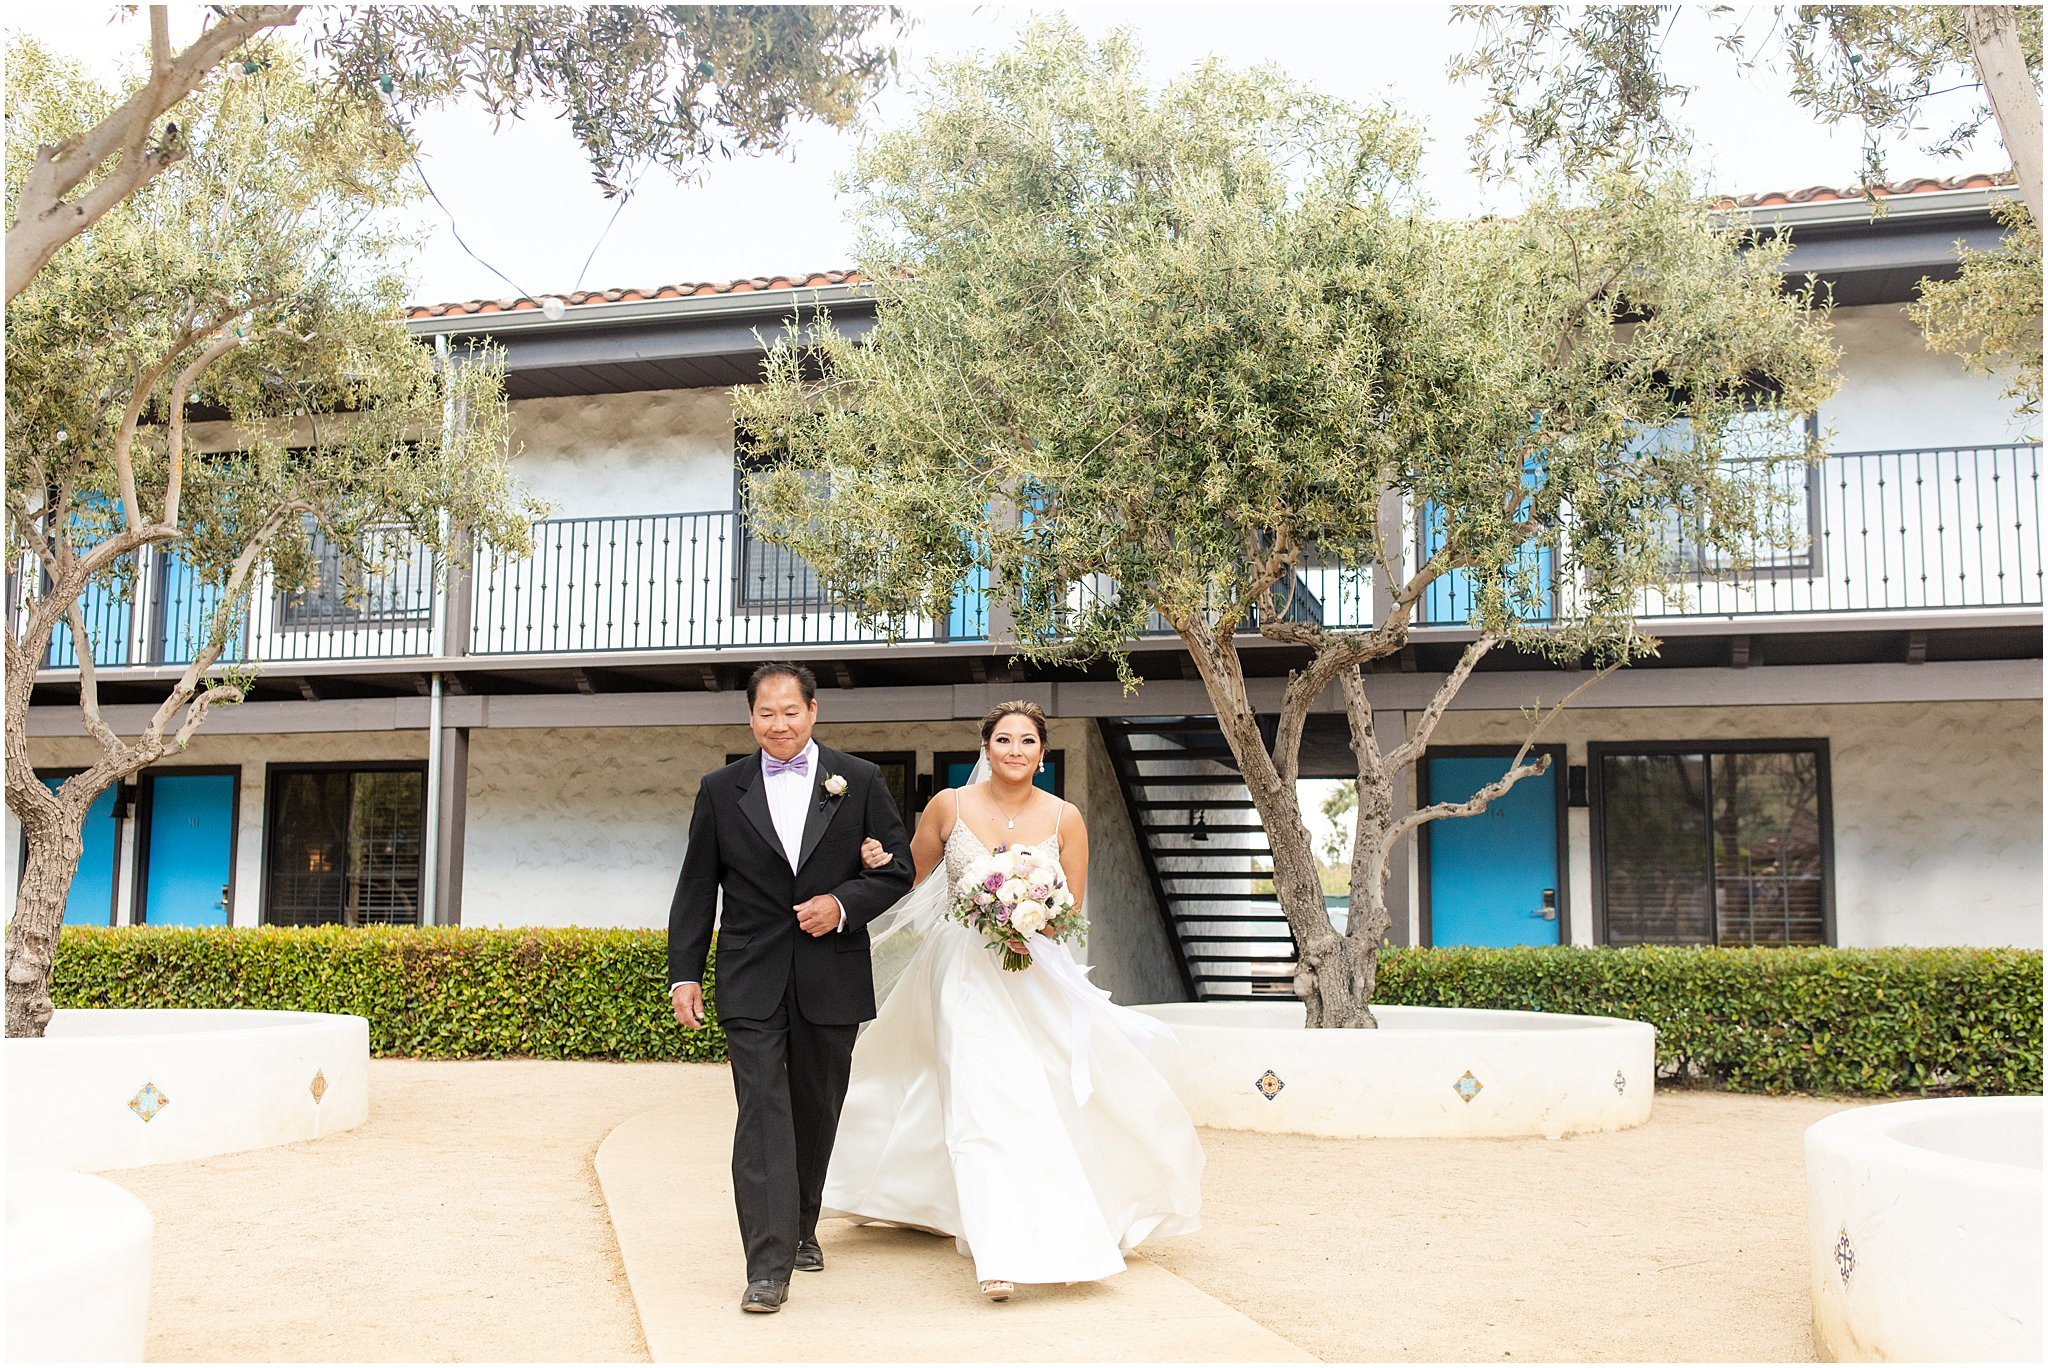 2019 wedding san juan bautista hacienda de leal vineyards bay area wedding photographer_0042.jpg